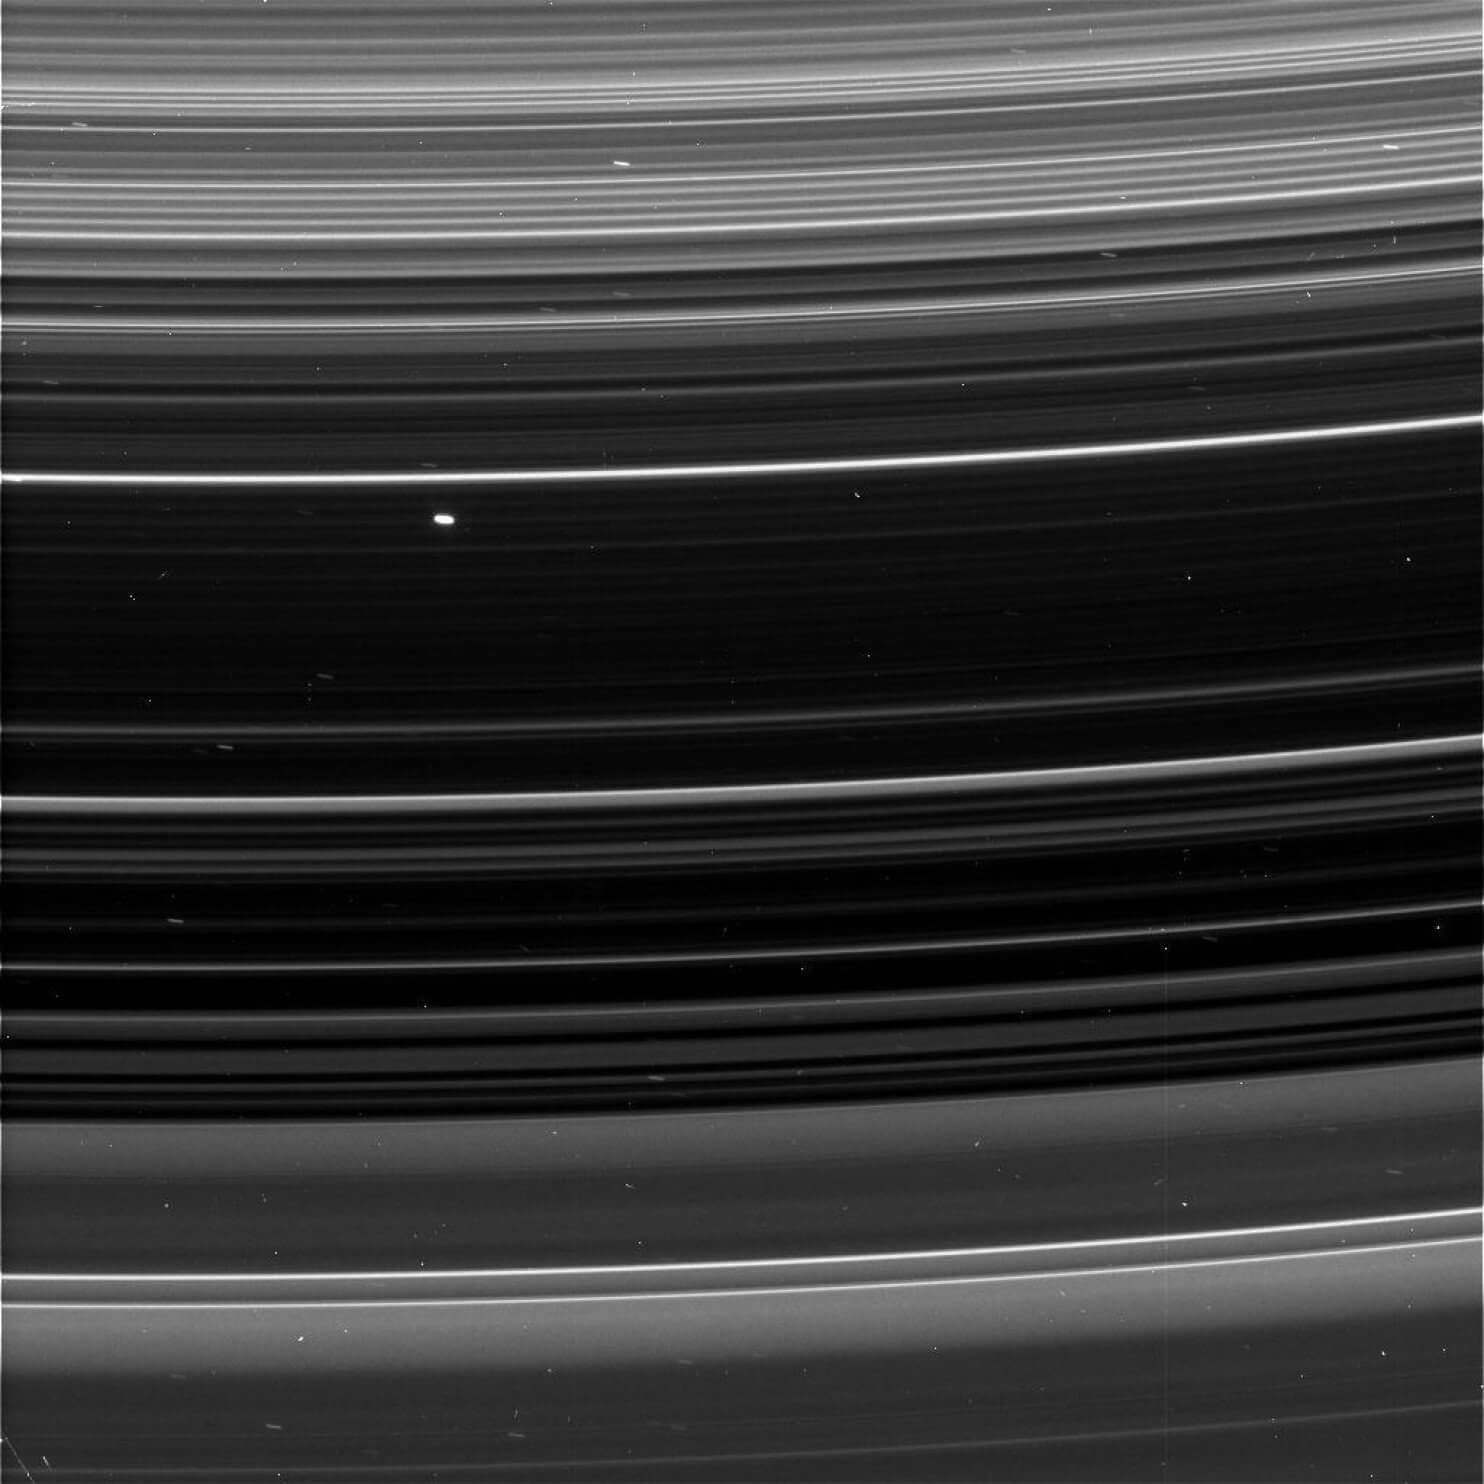 Here Are The First Stunning Pictures Sent From Cassini's First Dive Through Saturn's Rings